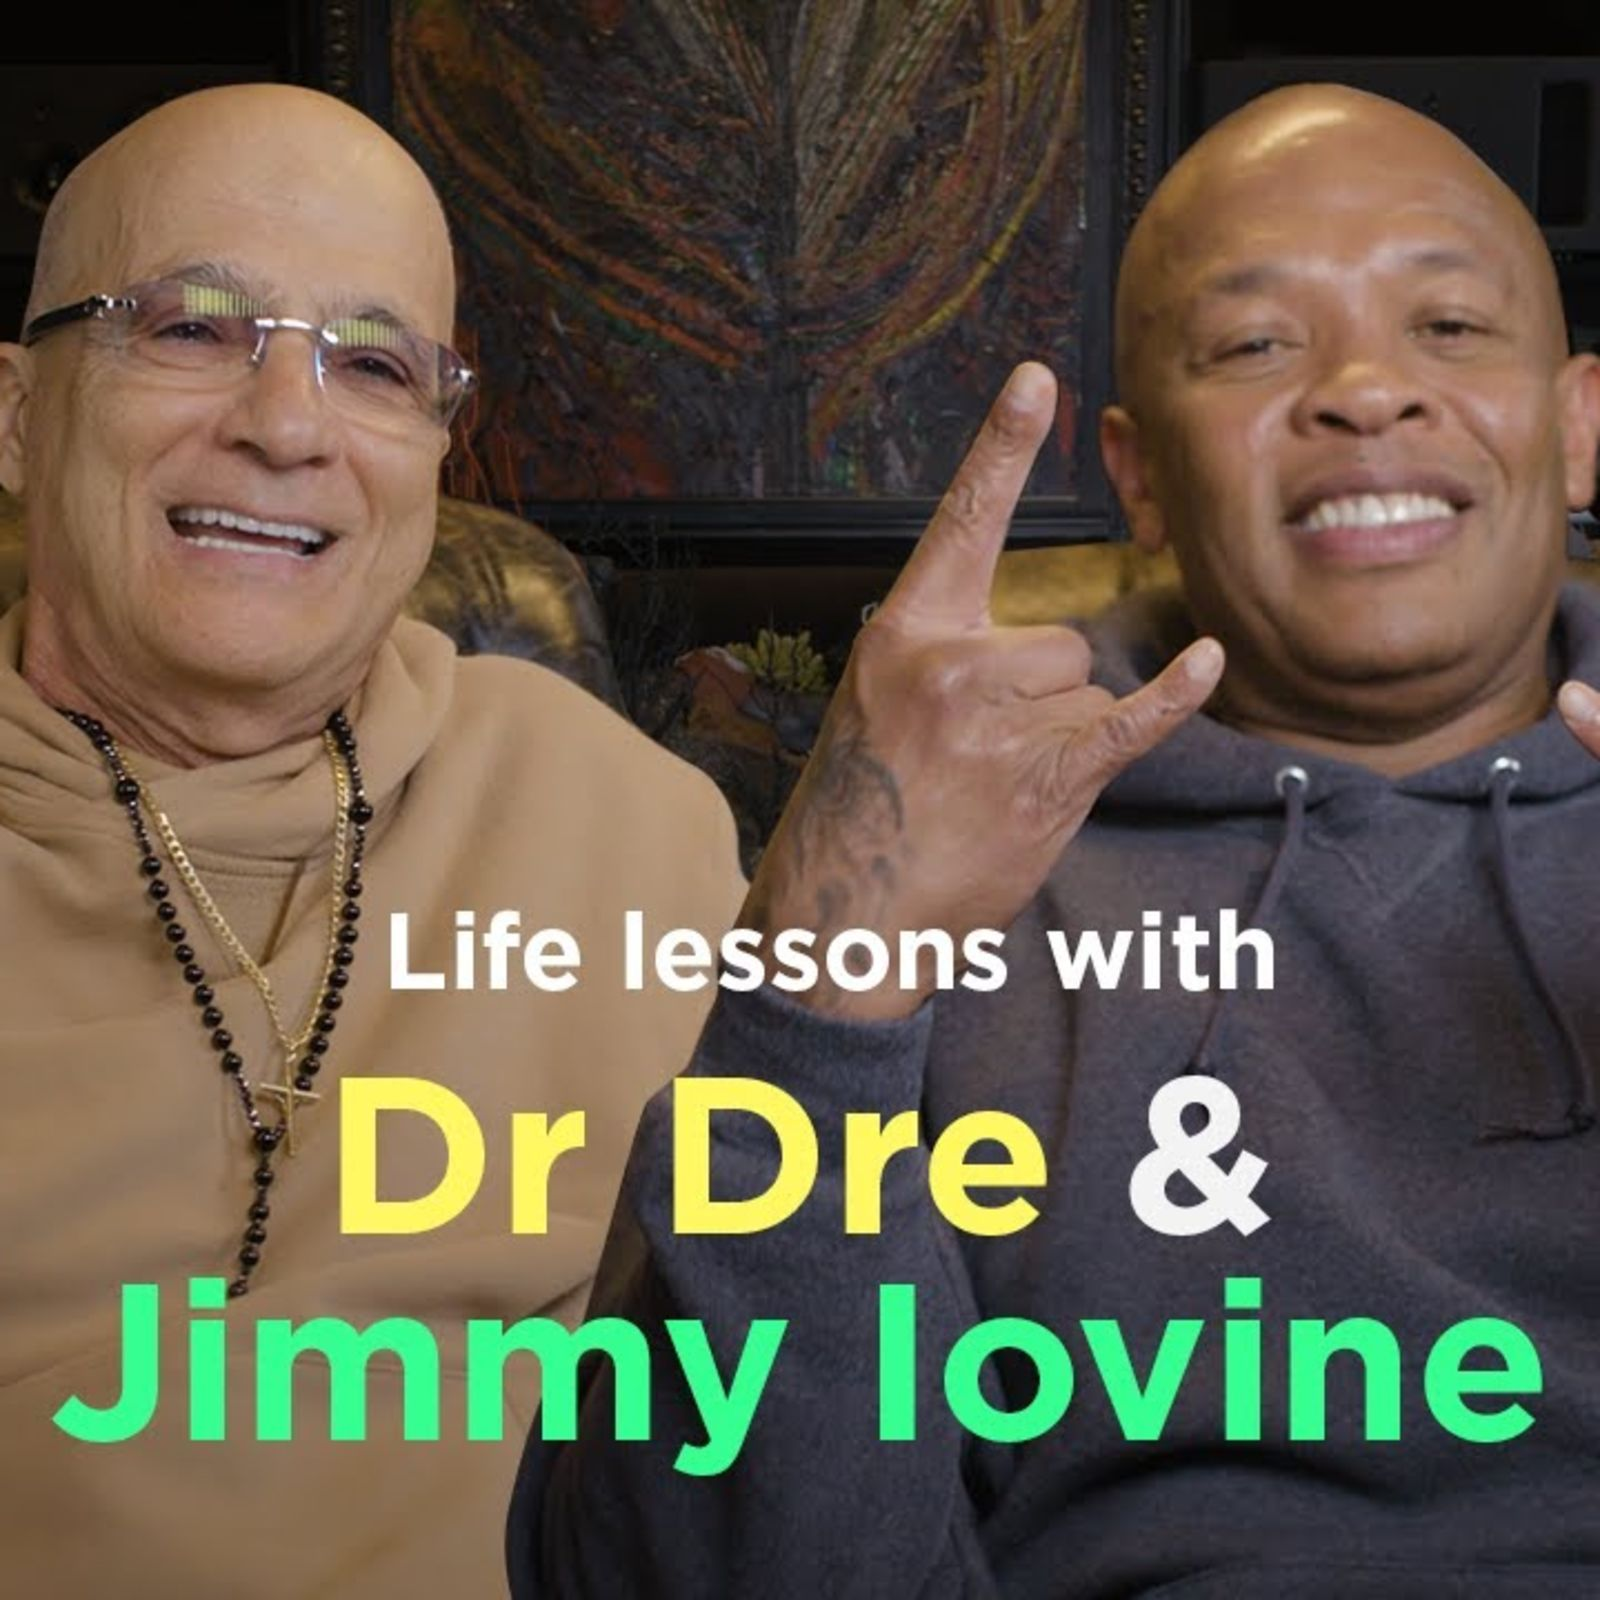 Dr Dre and Jimmy Iovine on their tips for success